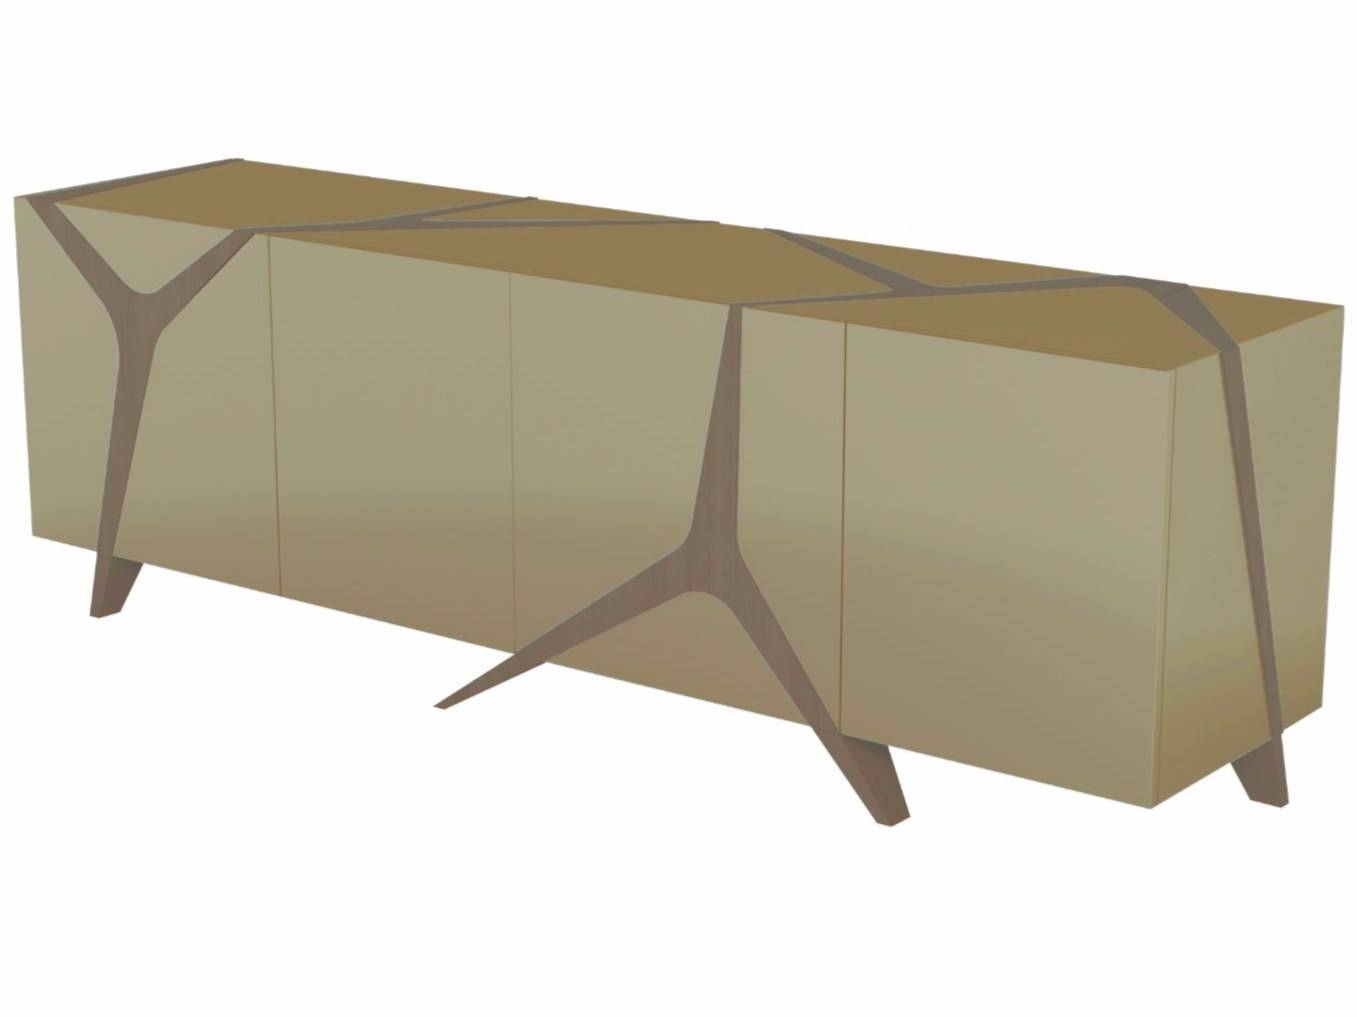 Rosace | Sideboard Les Contemporains Collectionroche Bobois with regard to Roche Bobois Sideboards (Image 12 of 15)